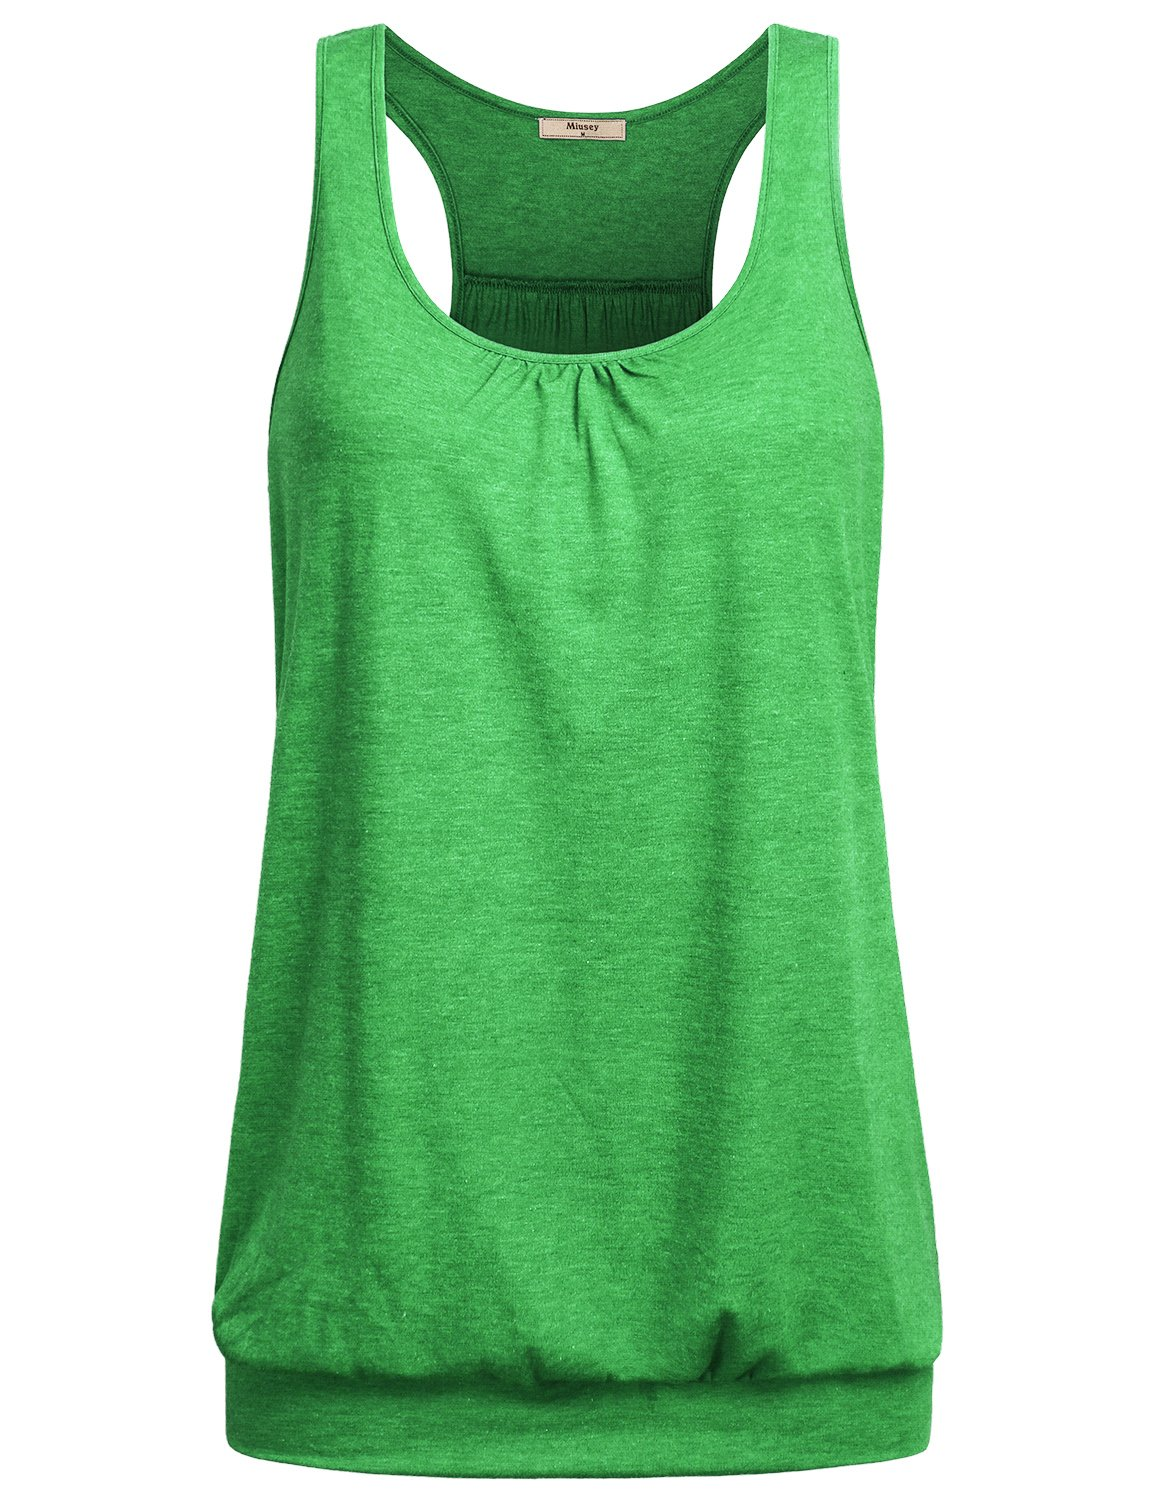 Miusey Womens Sleeveless Round Neck Loose Fit Racerback Workout Tank Top (XX-Large, Grass-Green)